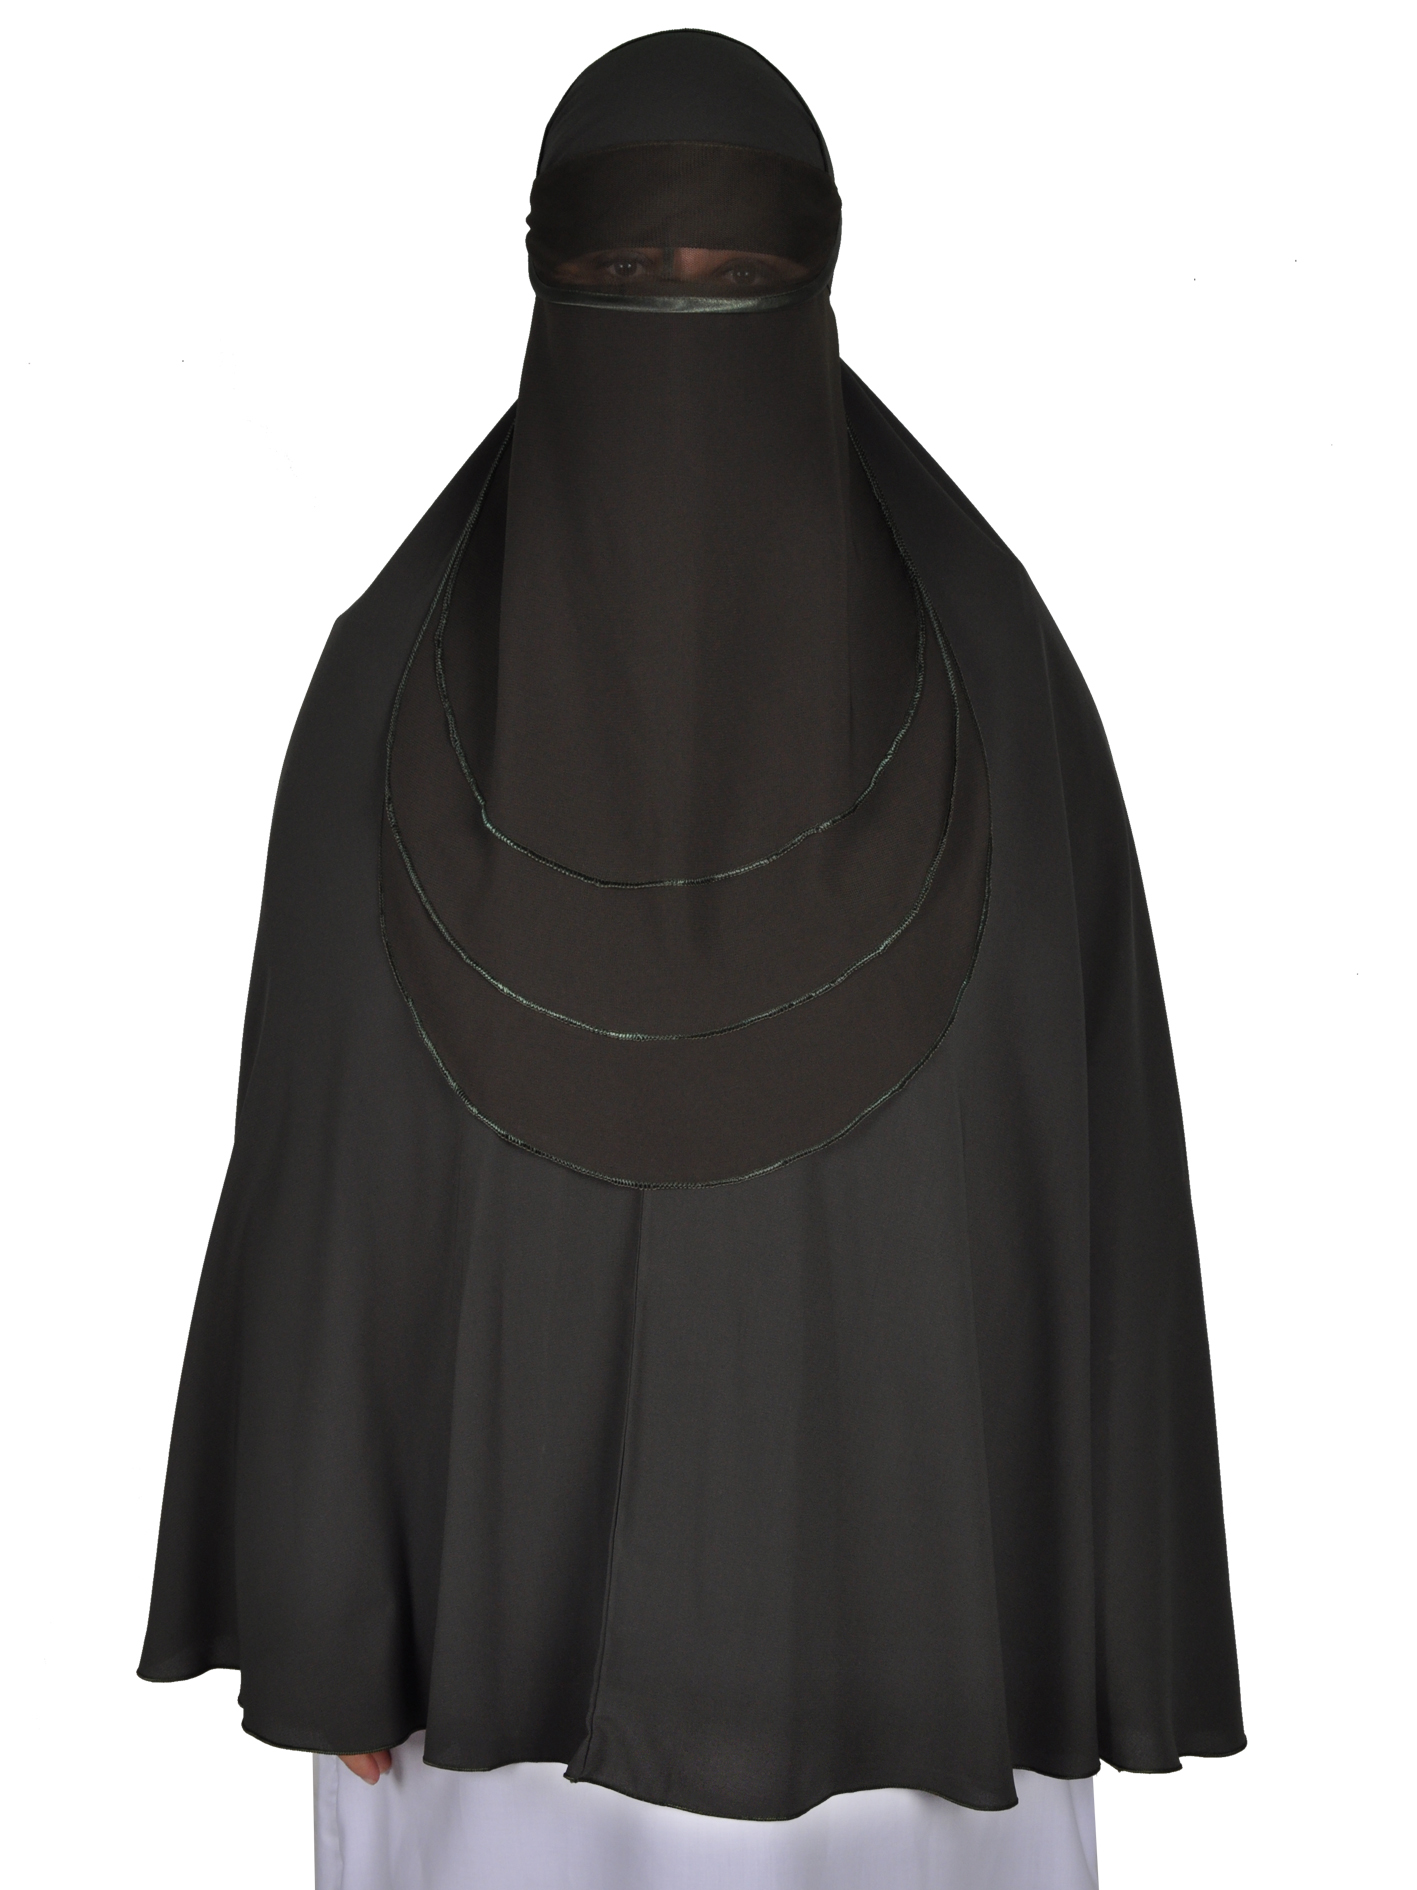 niqab gesichtsschleier olivgr n hijab online kaufen egypt bazar shop. Black Bedroom Furniture Sets. Home Design Ideas